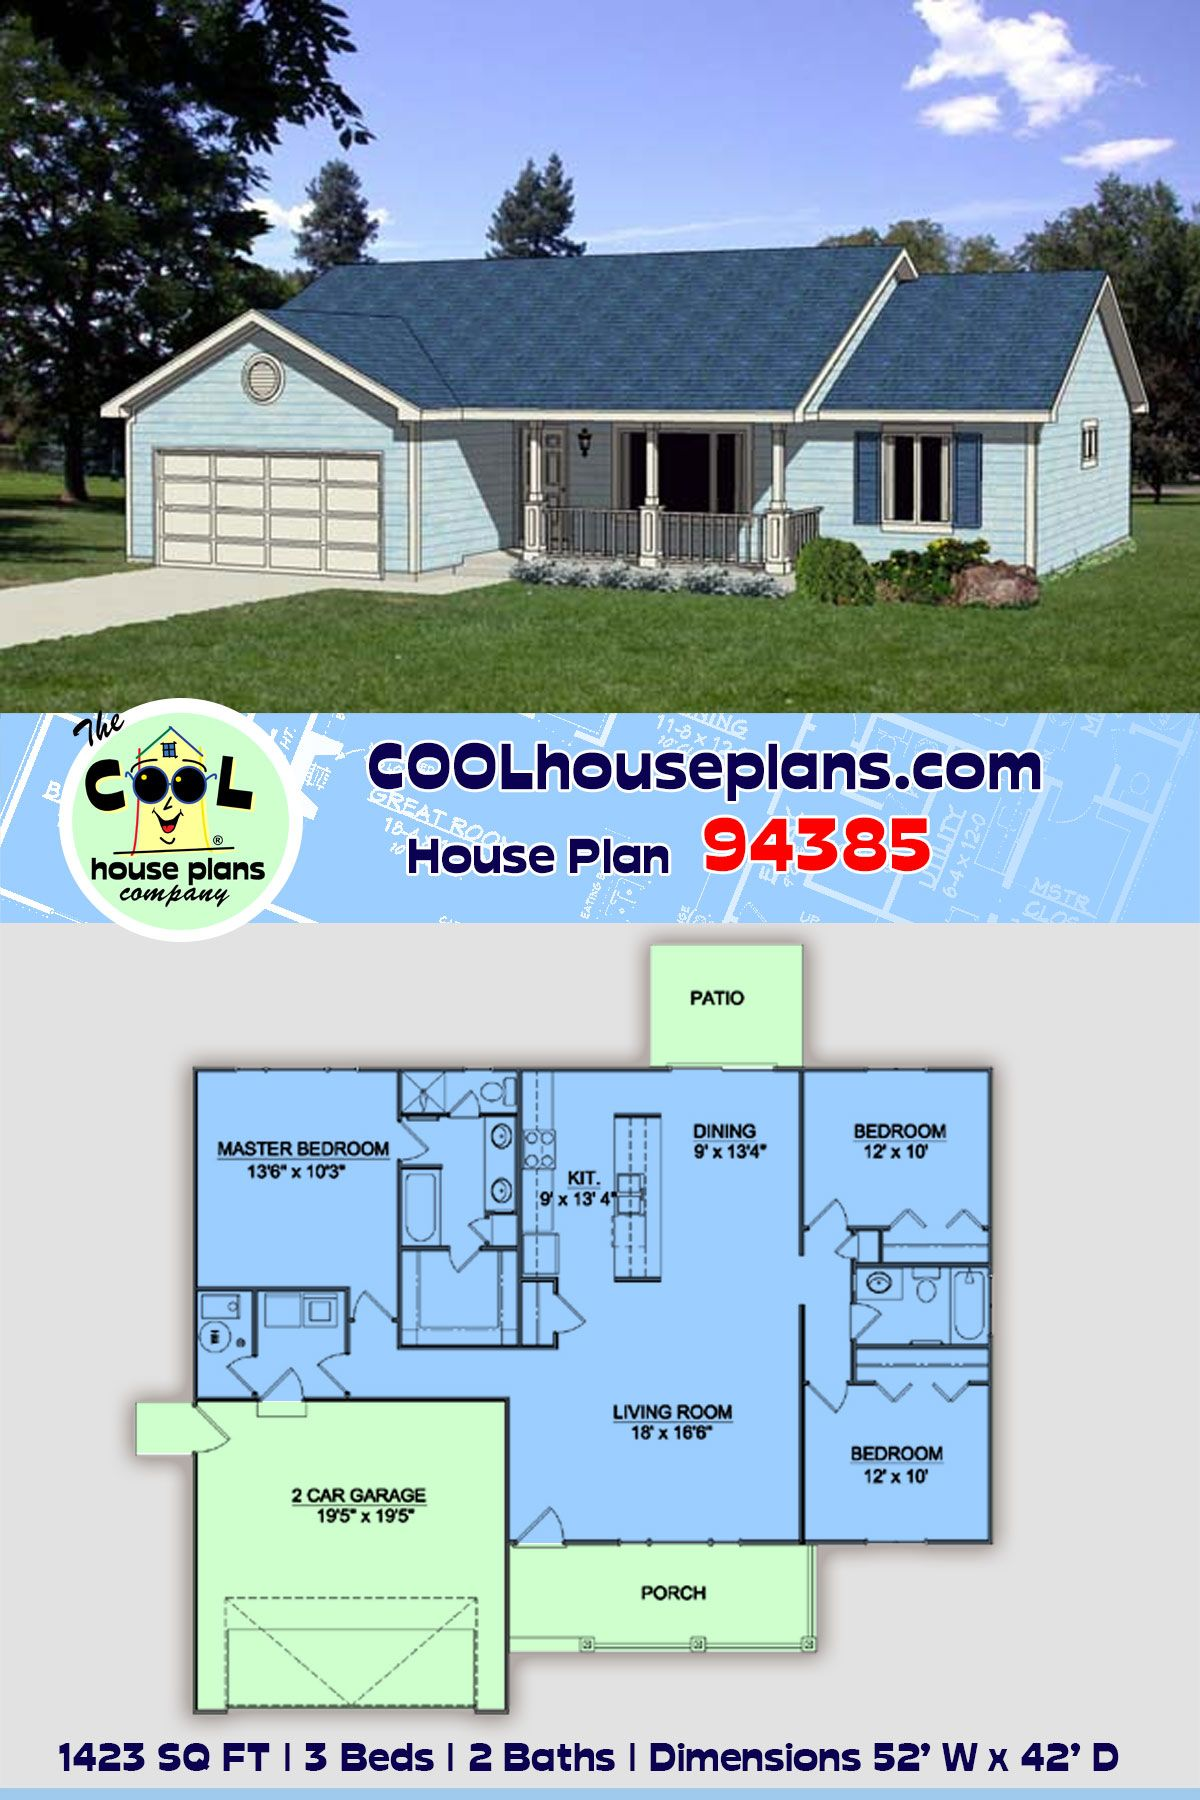 Traditional Style House Plan 94385 With 3 Bed 2 Bath 2 Car Garage In 2020 House Plans Ranch House Plans Garage House Plans